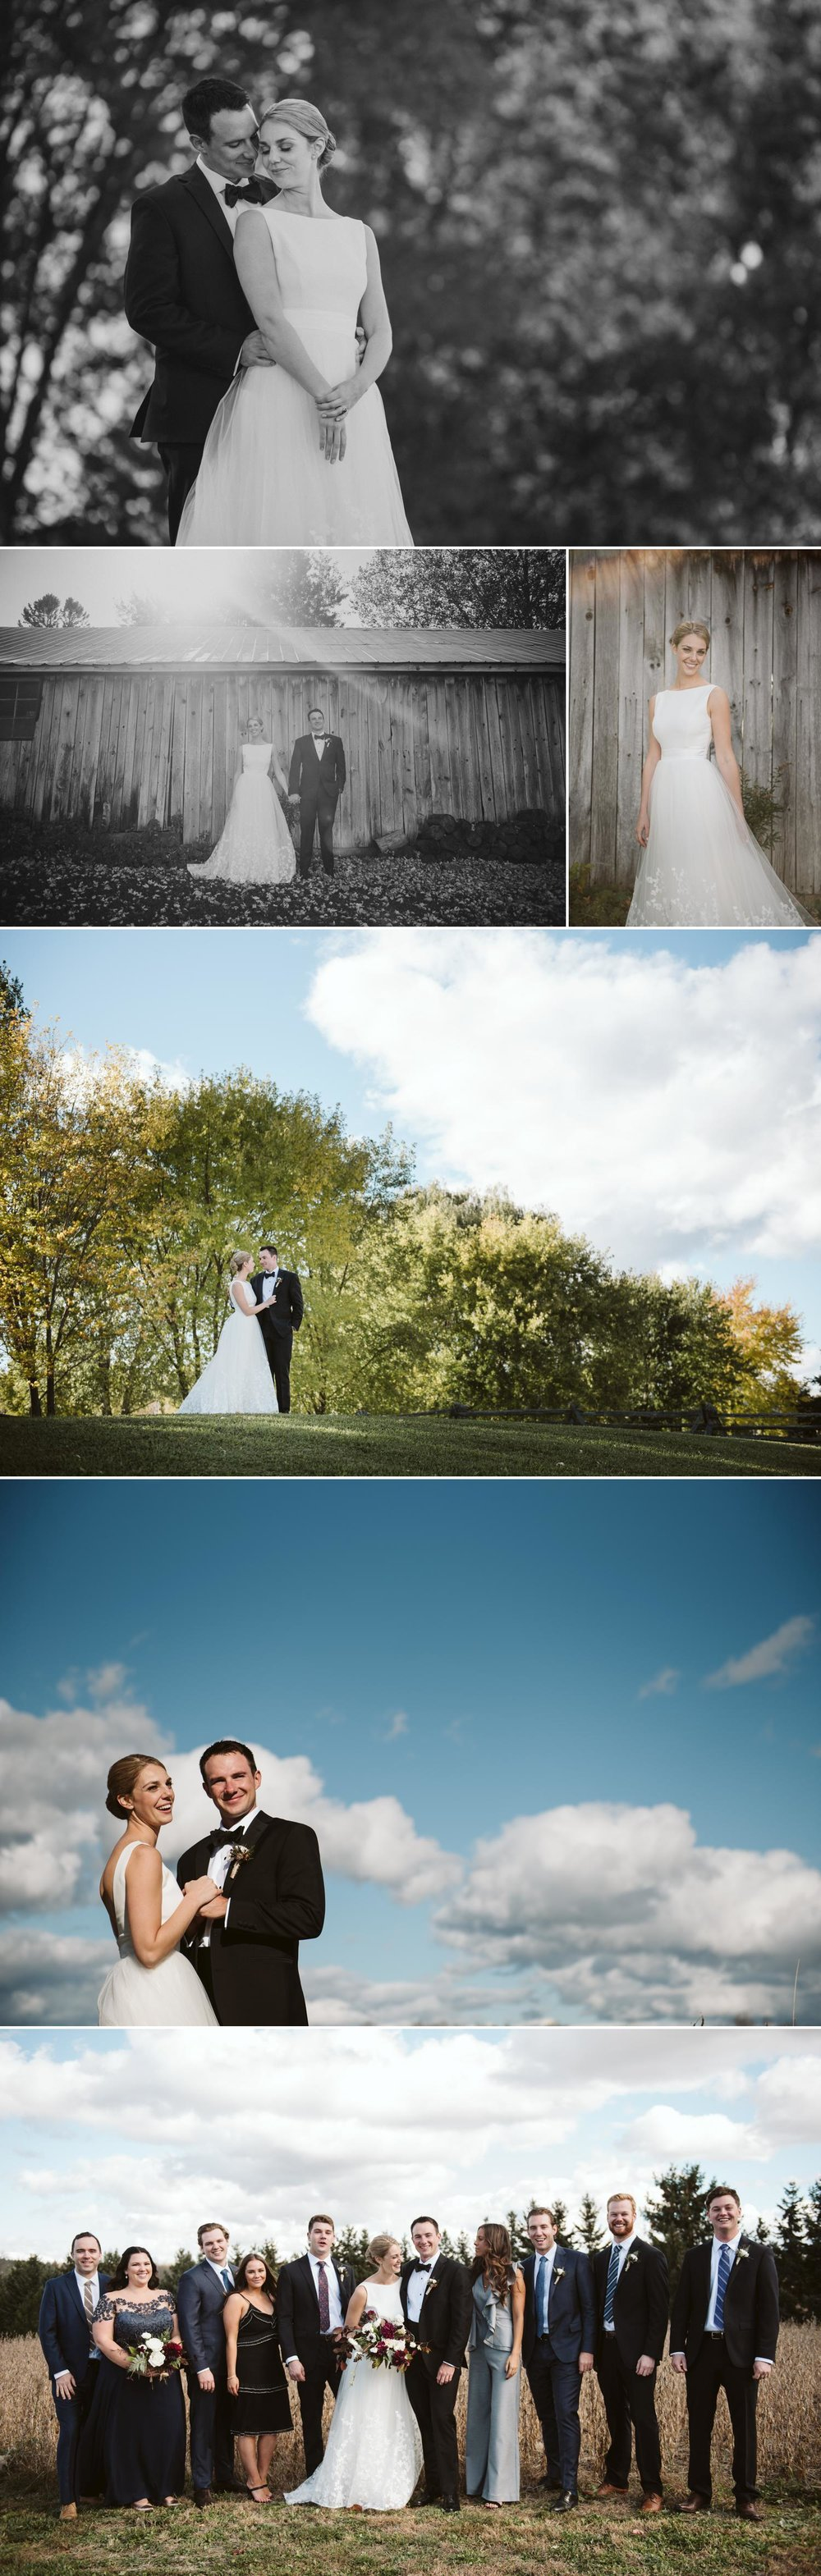 photos of a bride and groom at evermore events in almonte ontario